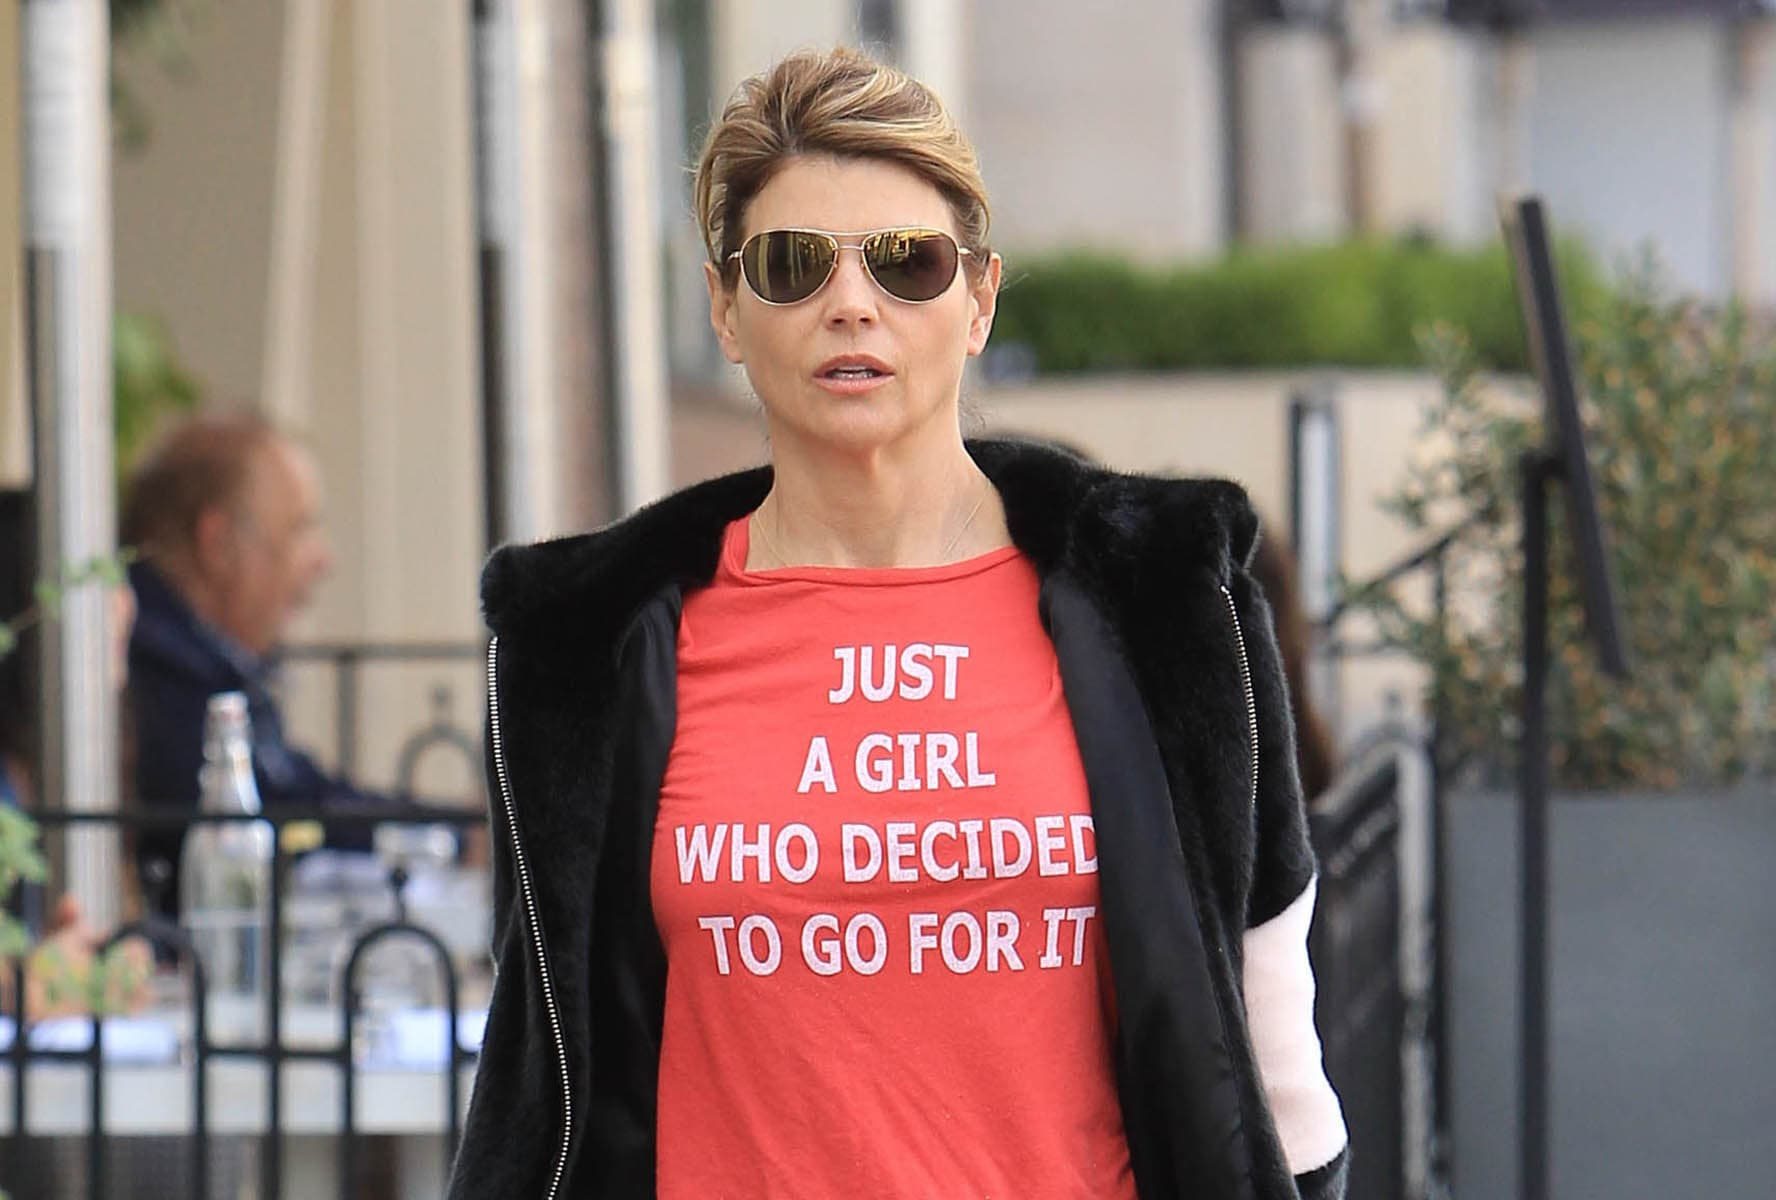 Lori Loughlin S Kids Remain Enrolled In Usc Amid Bribe Scandal